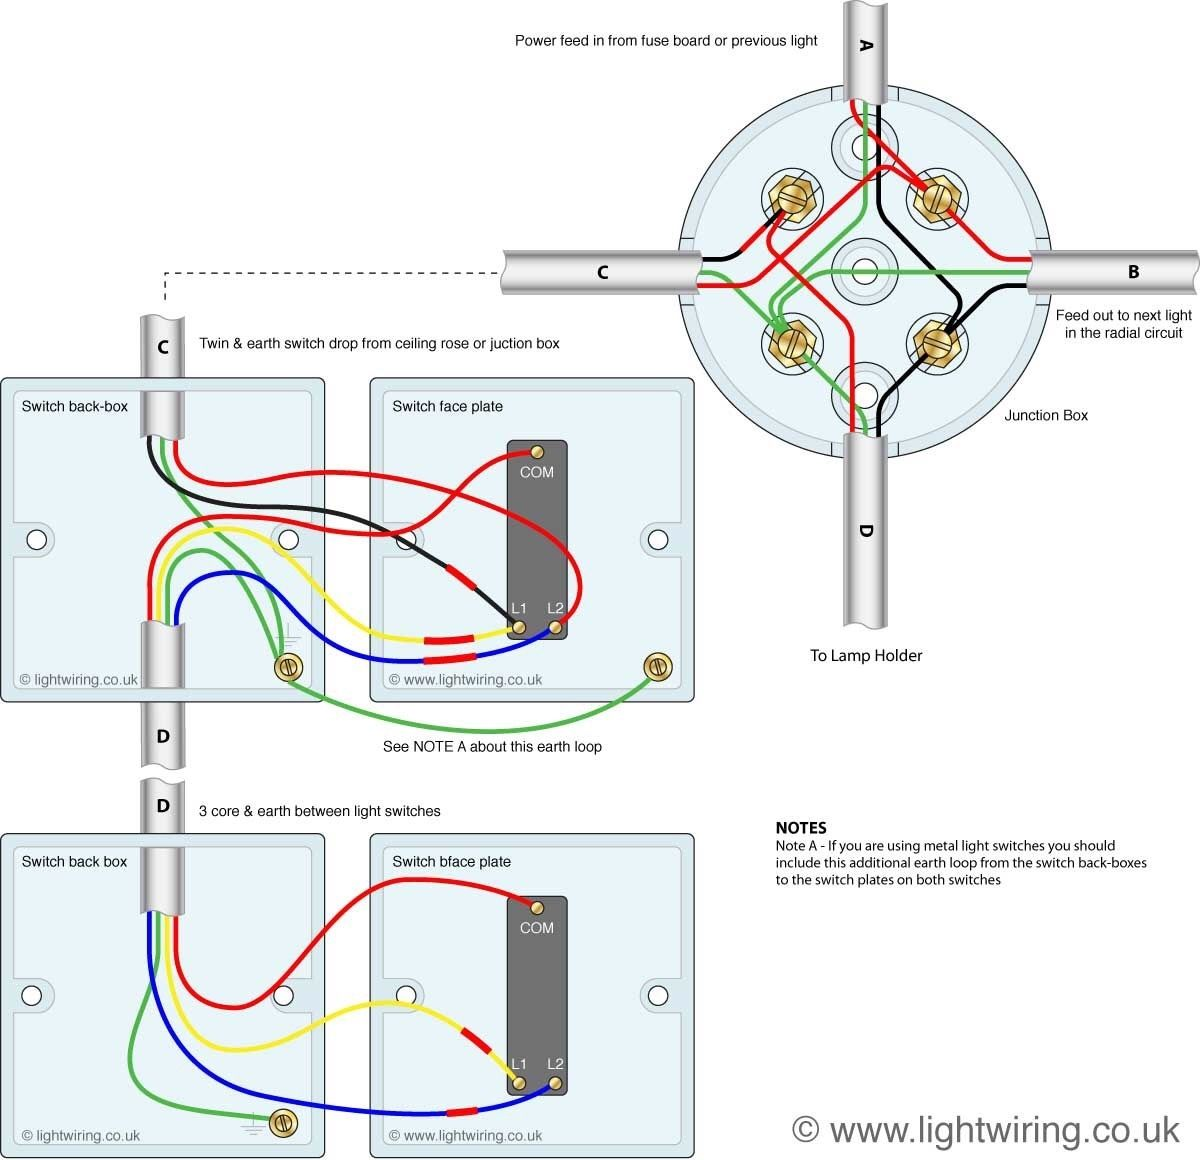 Can track lighting to light wiring wiring library 3 way switch light fixture http deai rank info pinterest rh pinterest co uk troubleshoot wiring track lighting plugg track lighting mozeypictures Image collections